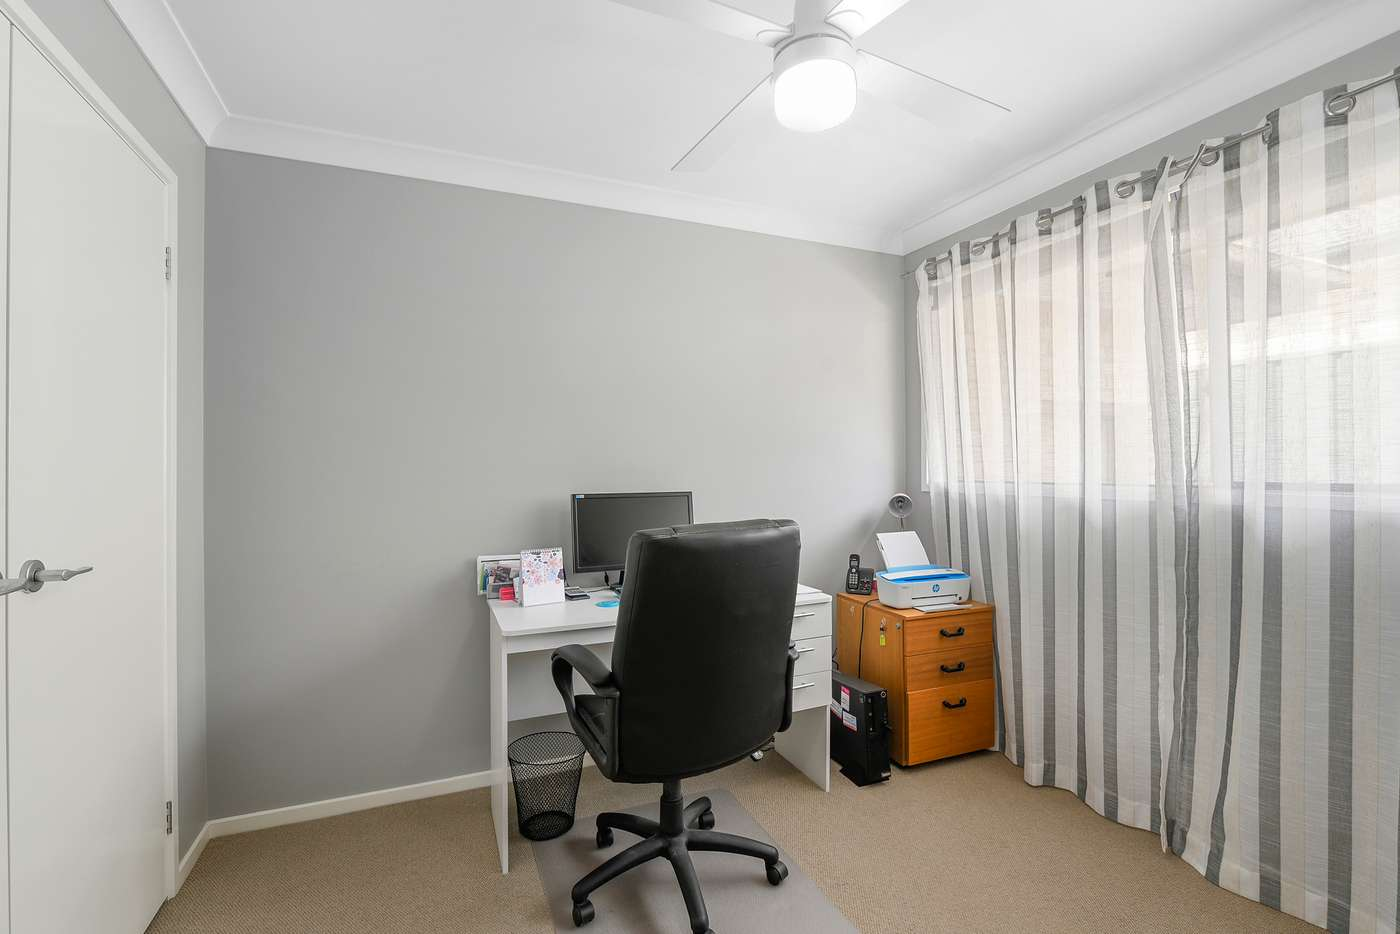 Sixth view of Homely house listing, 10 Oceanic Drive, Sandy Beach NSW 2456